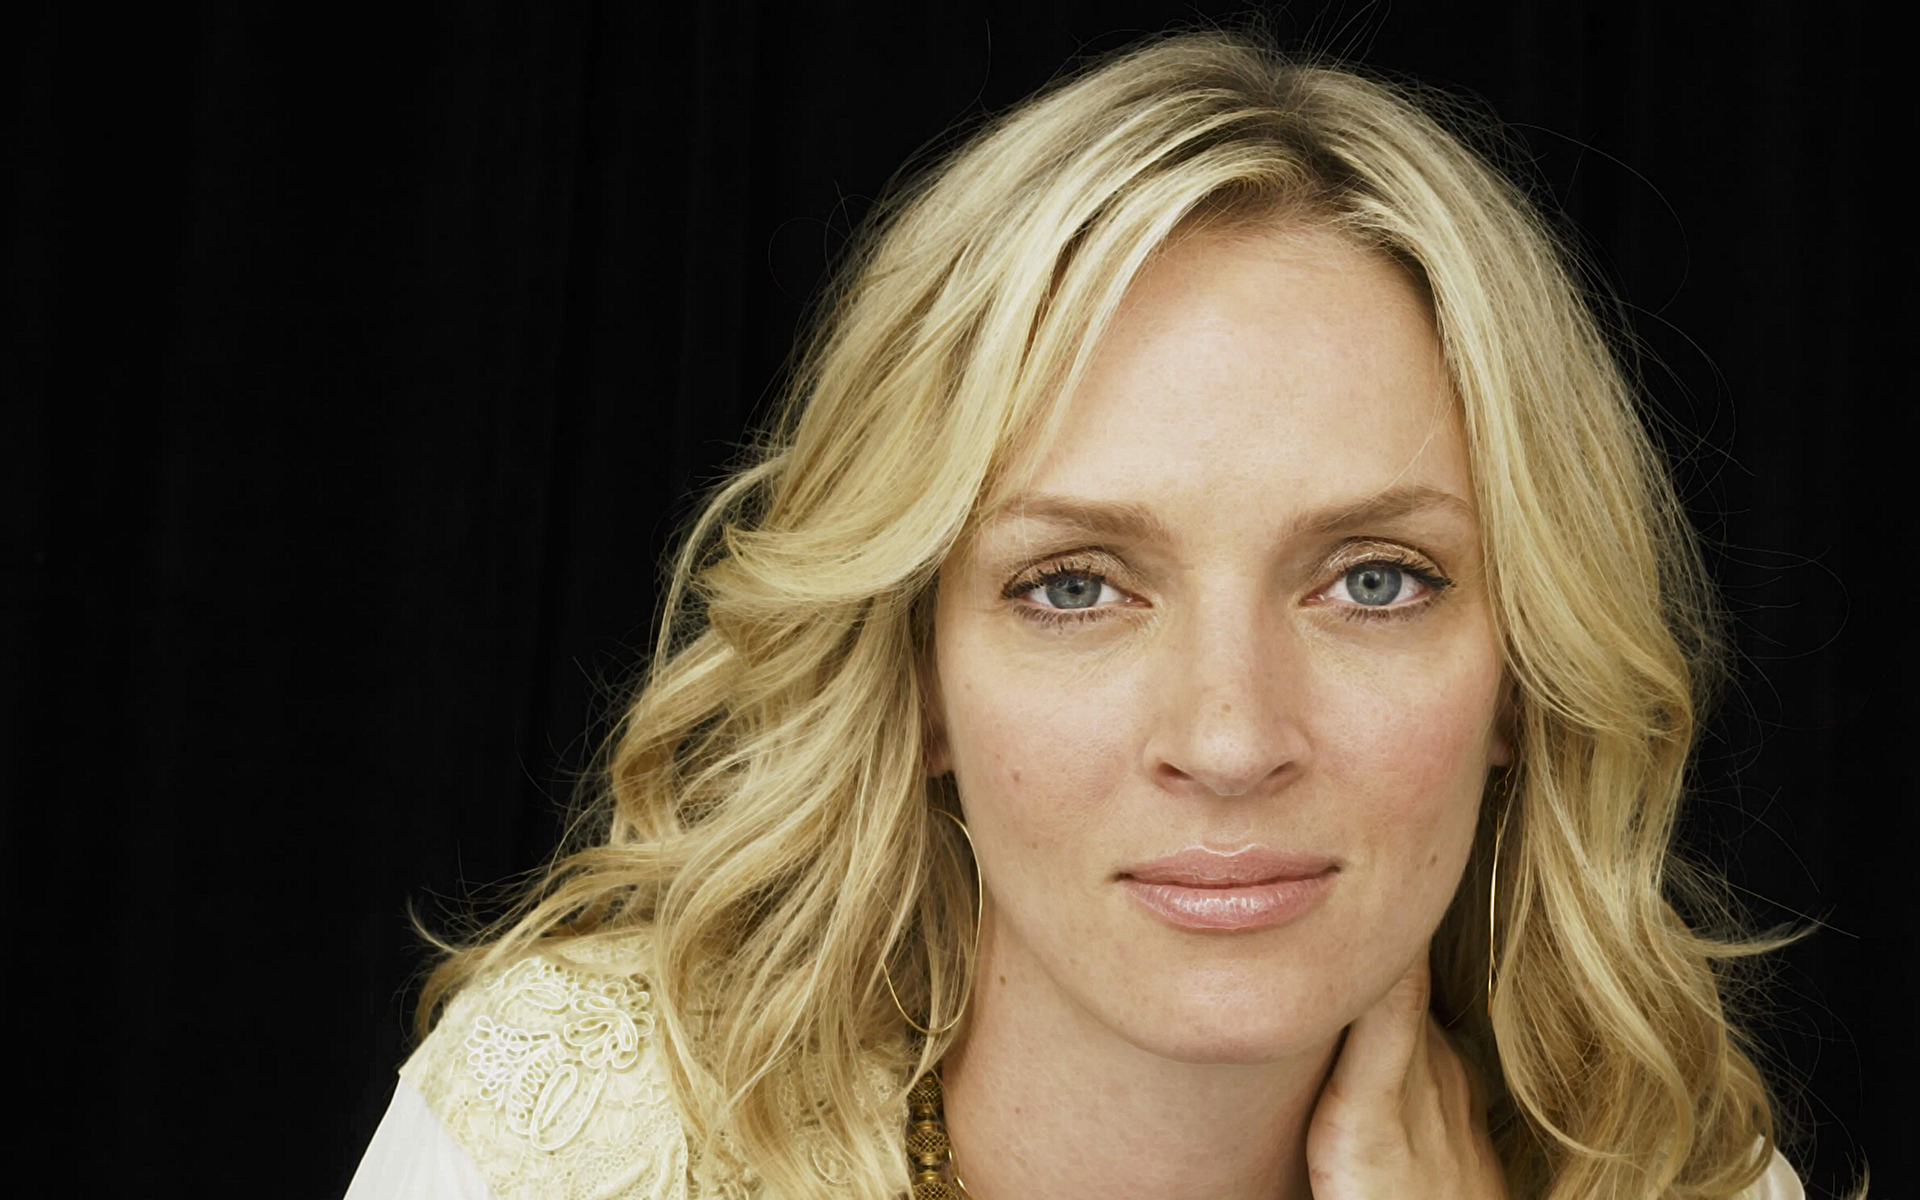 Uma Thurman Wallpapers High Resolution and Quality Download